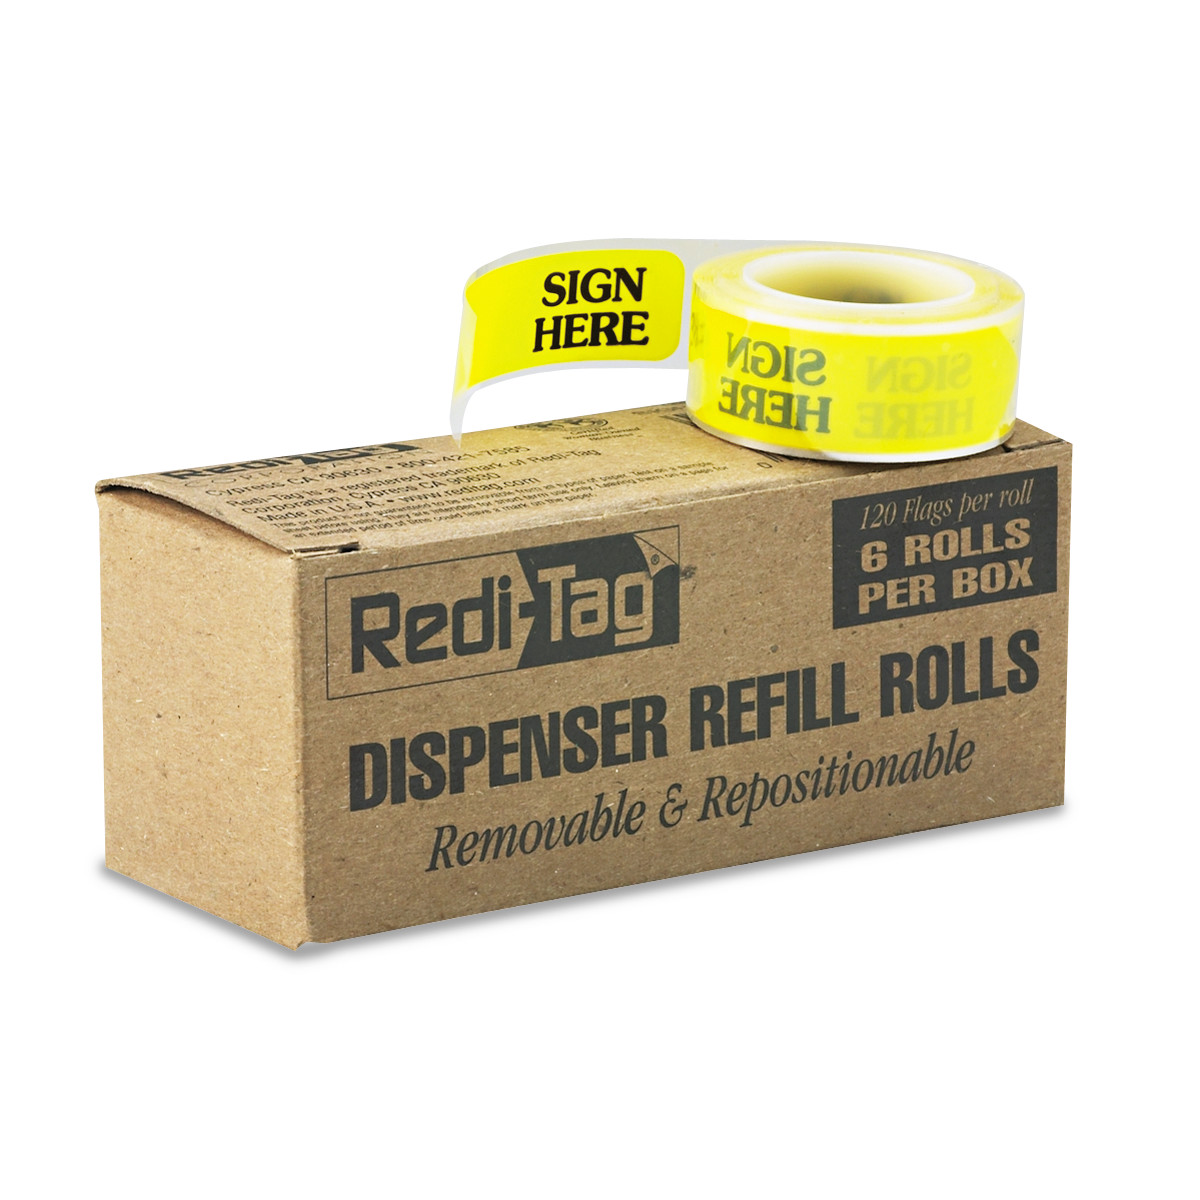 "Redi-Tag Arrow Message Page Flag Refills, ""Sign Here"", Yellow, 6 Rolls of 120 Flags -RTG91001"